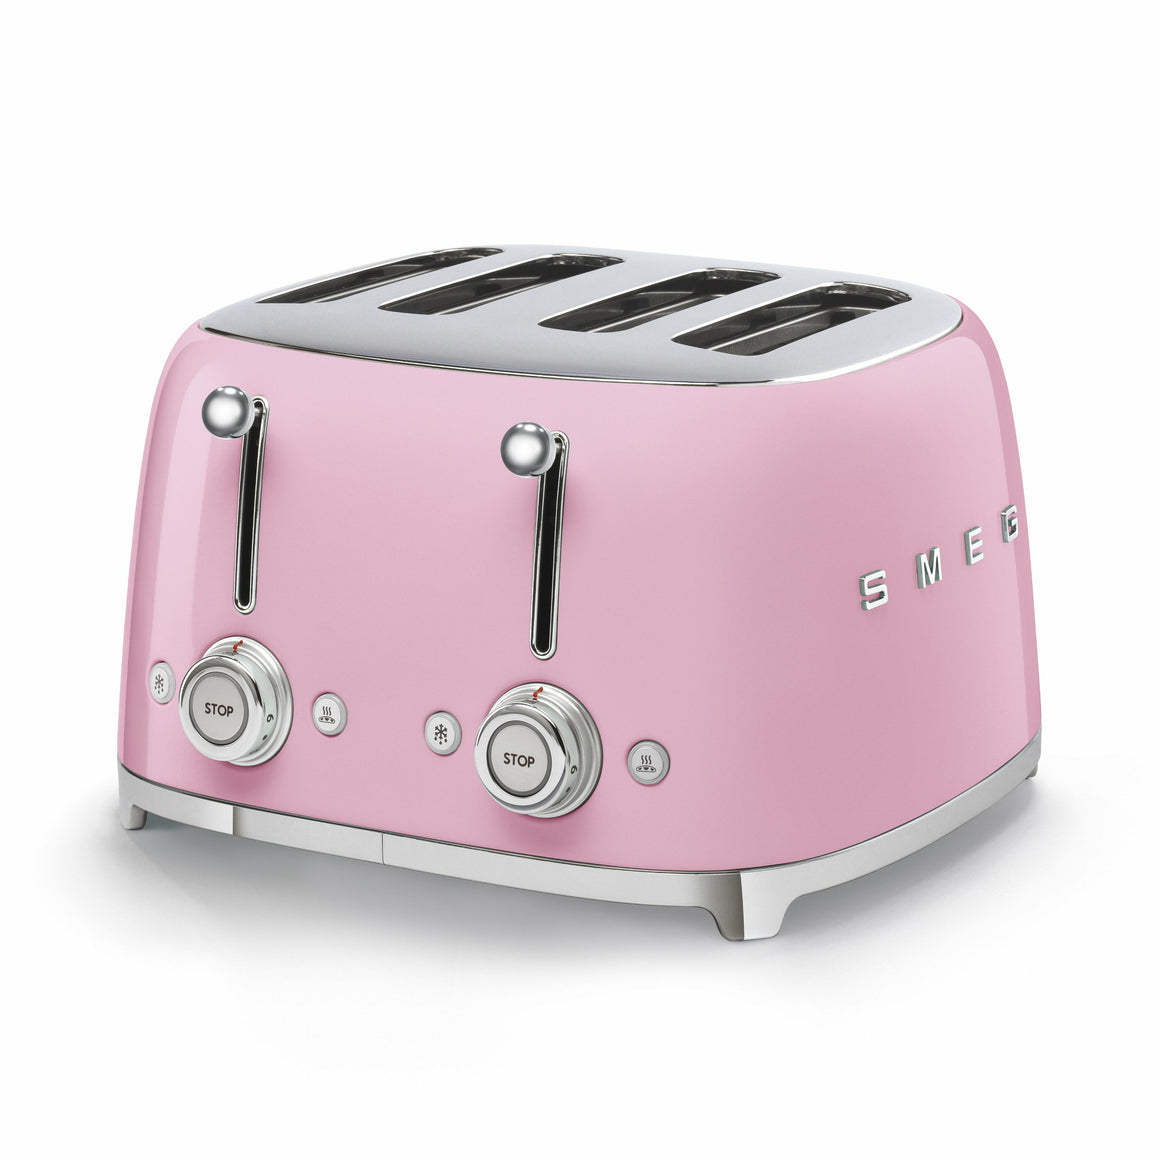 Smeg 4 Slot Toaster - All Sizes